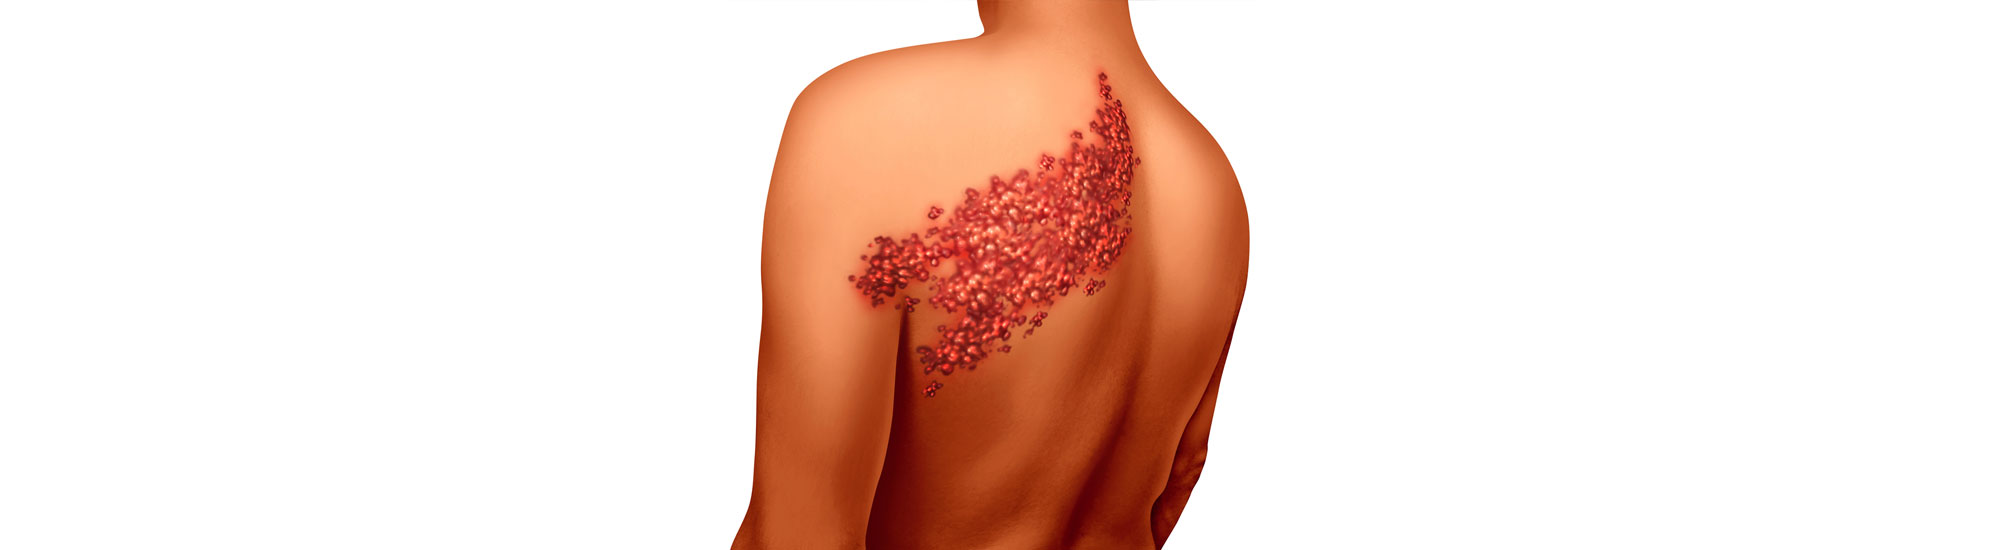 Ayurvedic treatment for What is Shingles